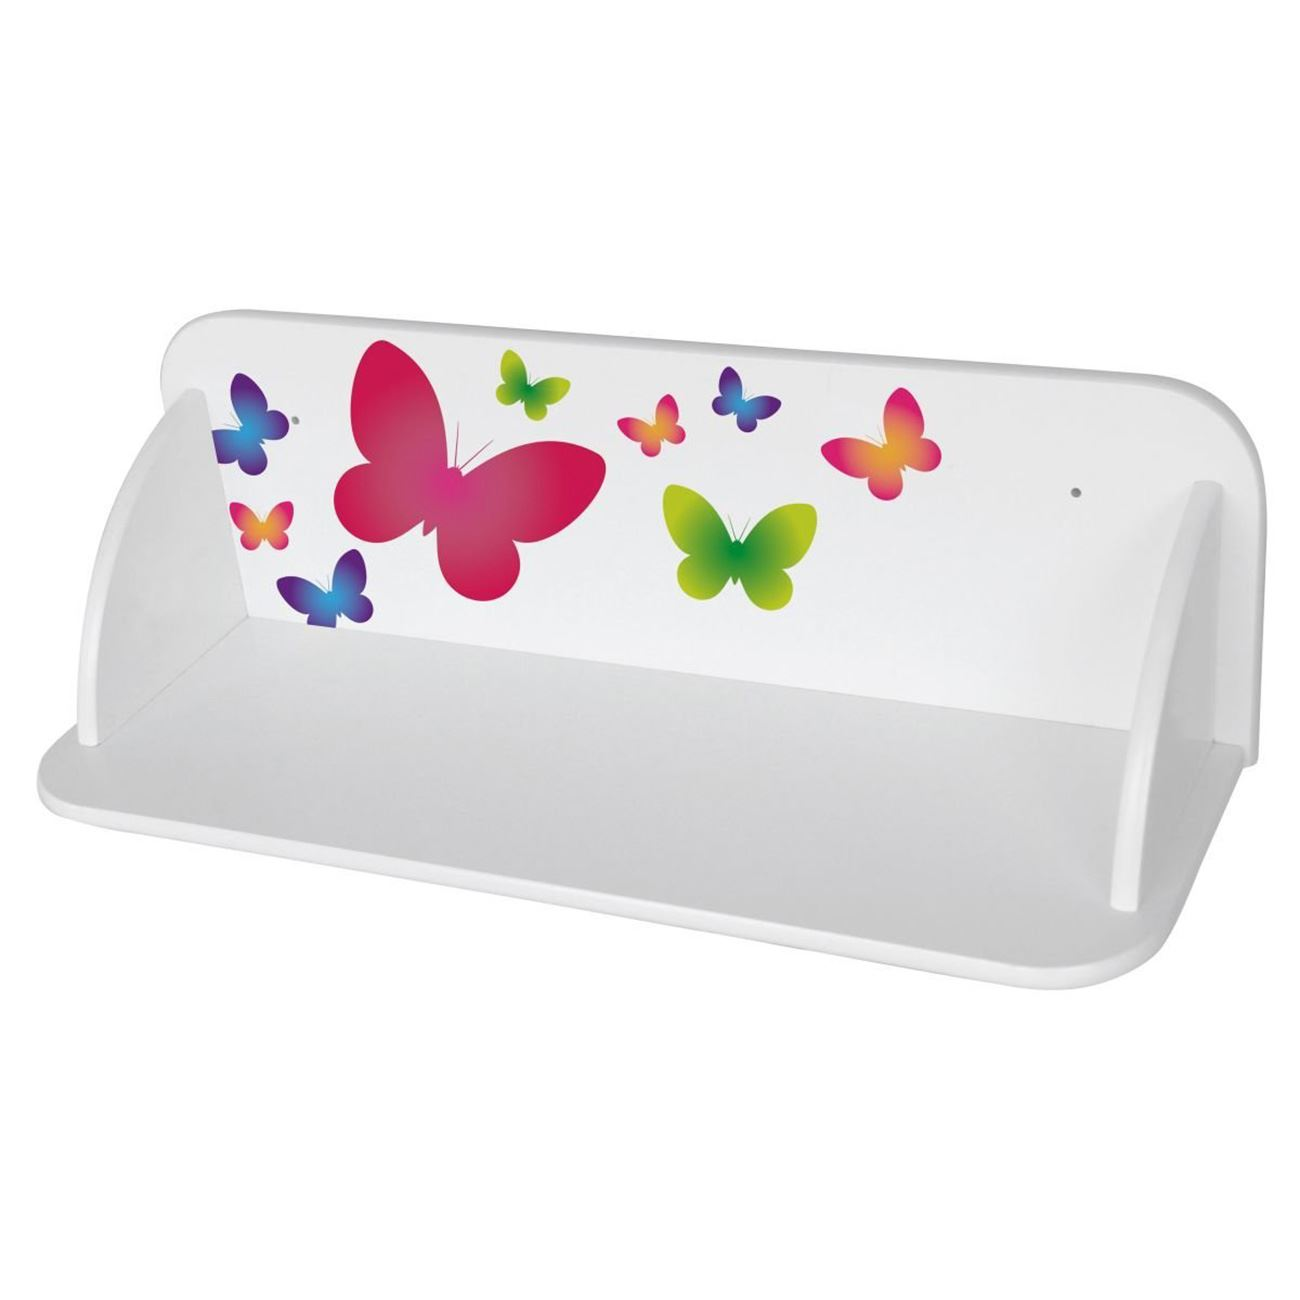 BUTTERFLIES WOODEN WALL MOUNTED BOOKSHELF CHILDRENS ROOM SHELF STORAGE